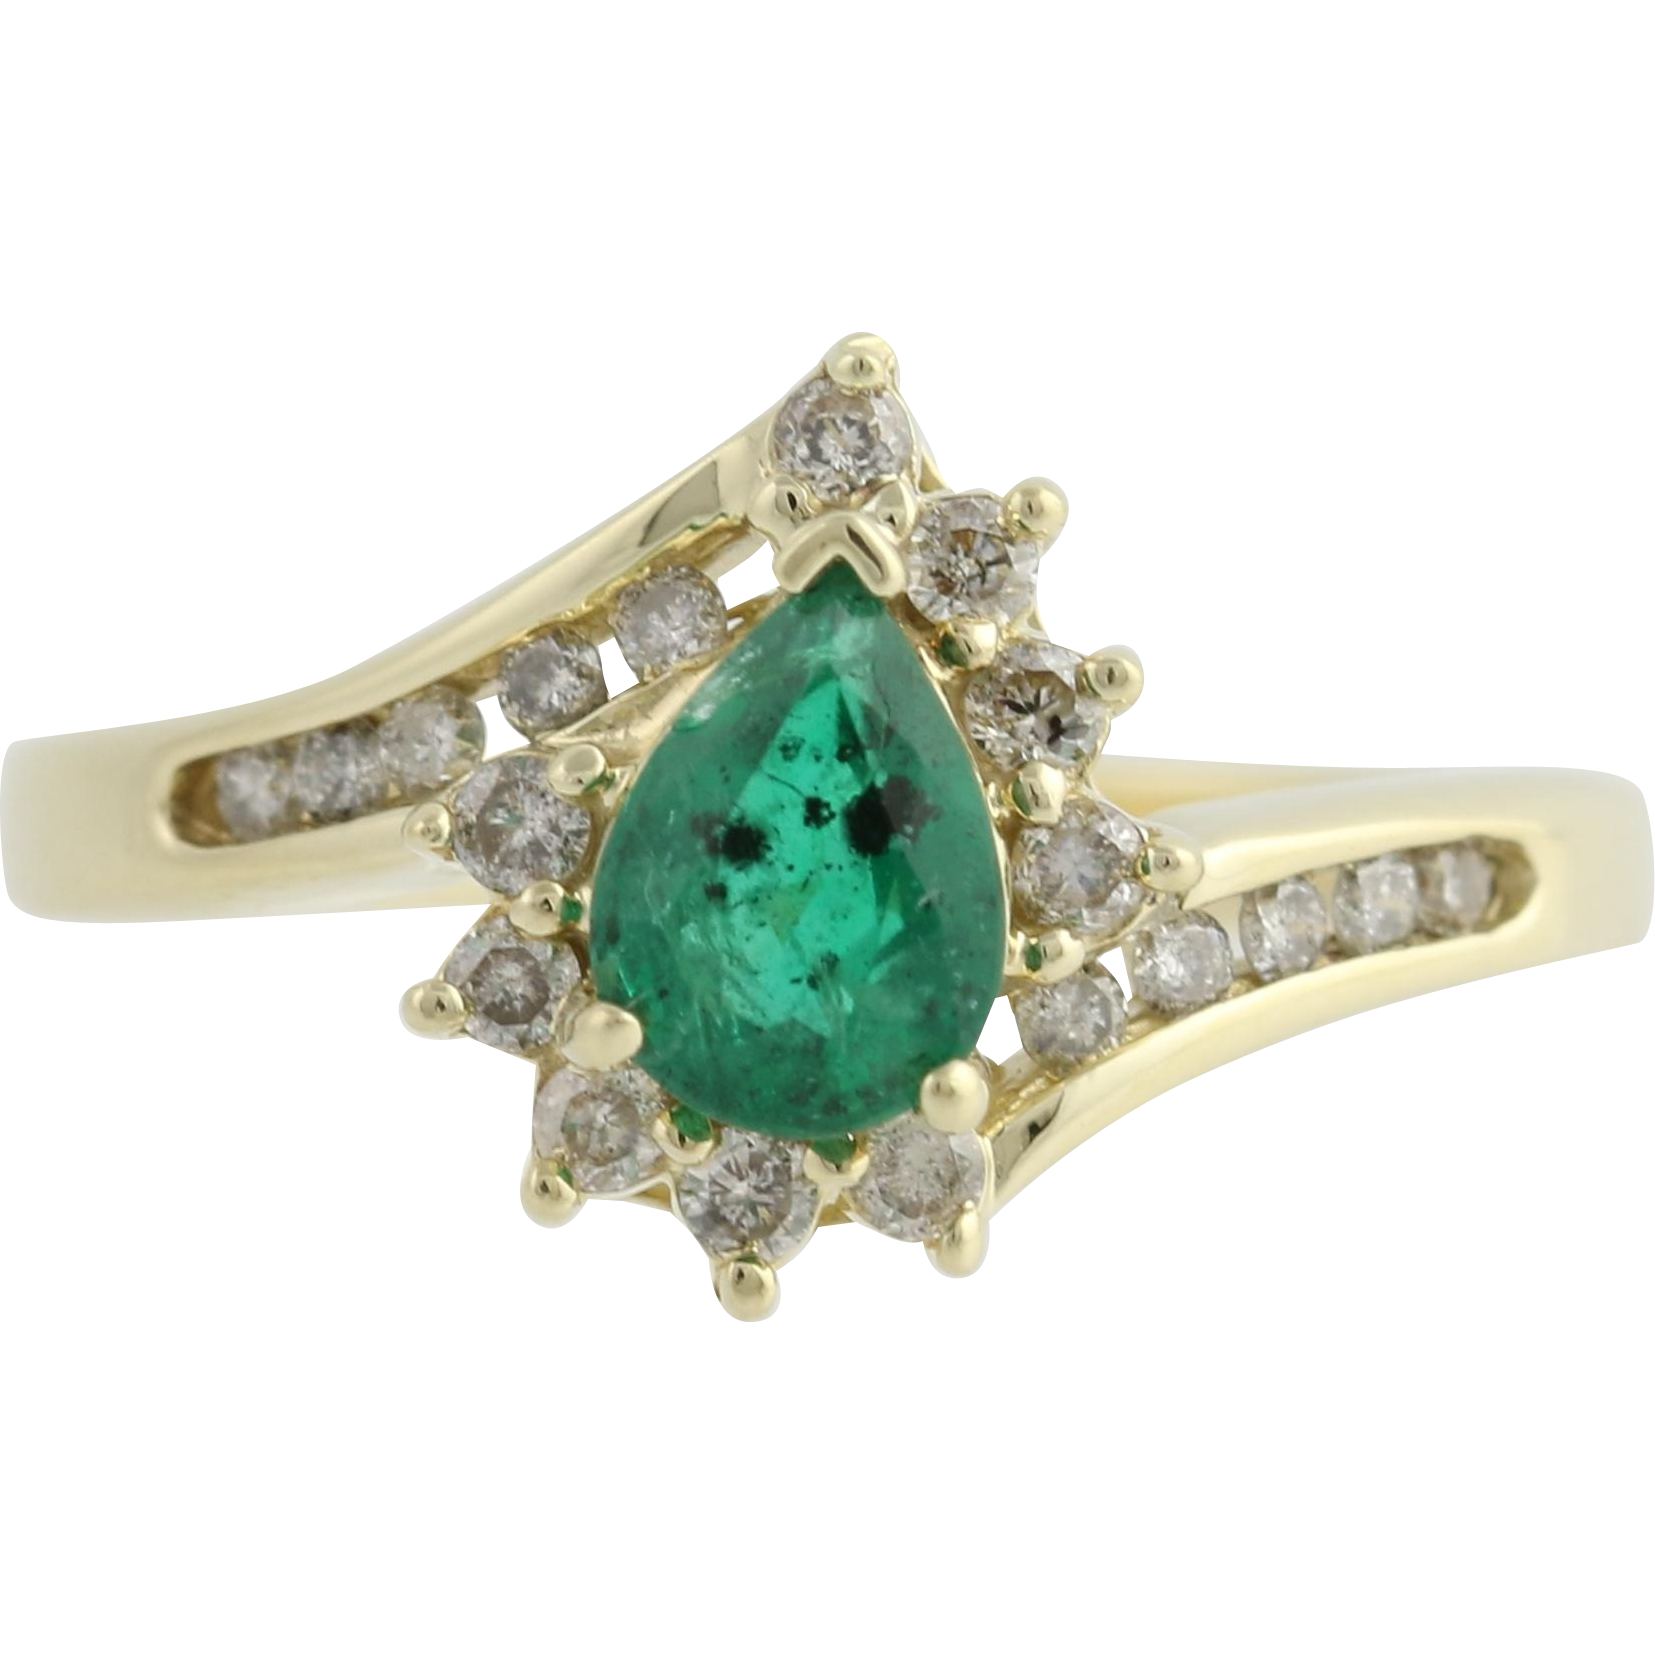 Emerald & Diamond Ring - 14k Yellow Gold Bypass Band Pear Solitaire 1ctw Women's